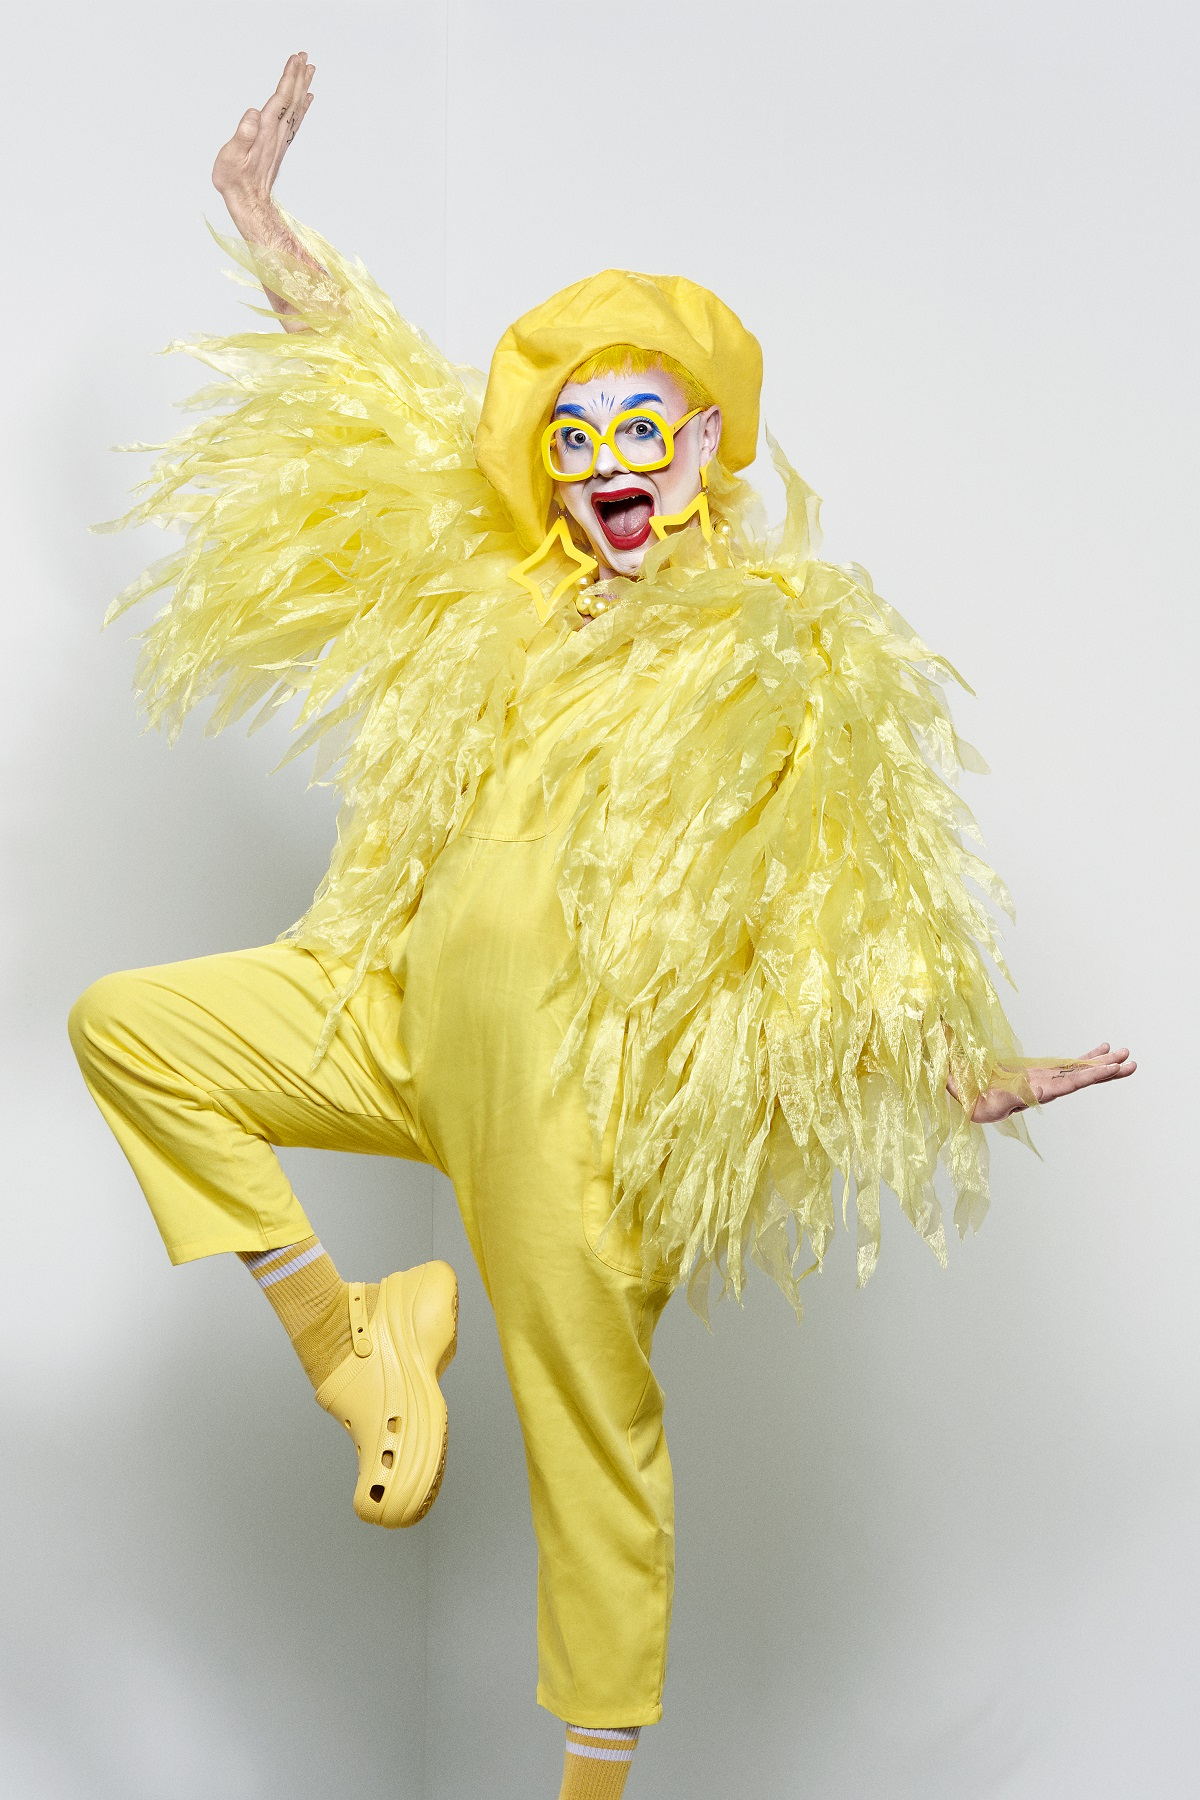 Ginny Lemon RuPaul's Drag Race UK Season 2